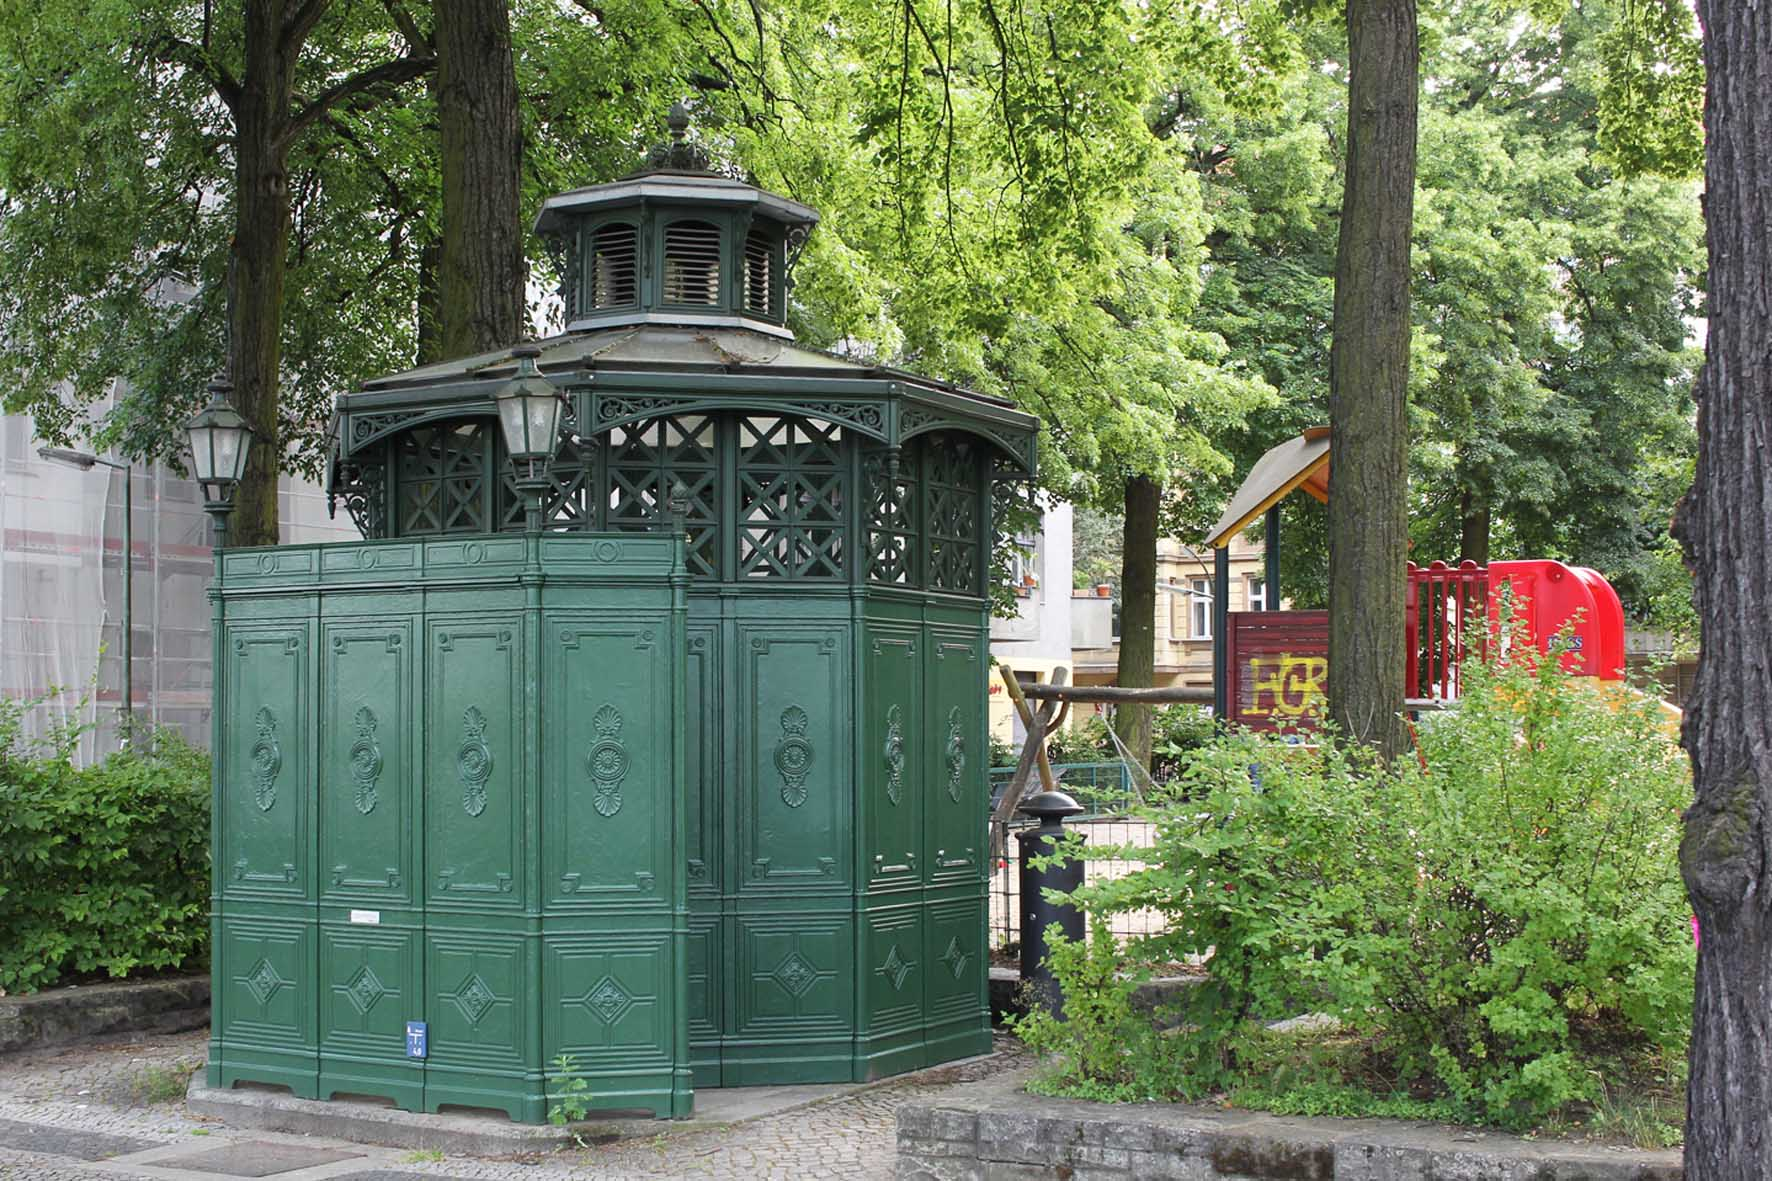 Café Achteck - Leuthener Platz - an example of Berlin's classic 19th century green cast iron public toilets